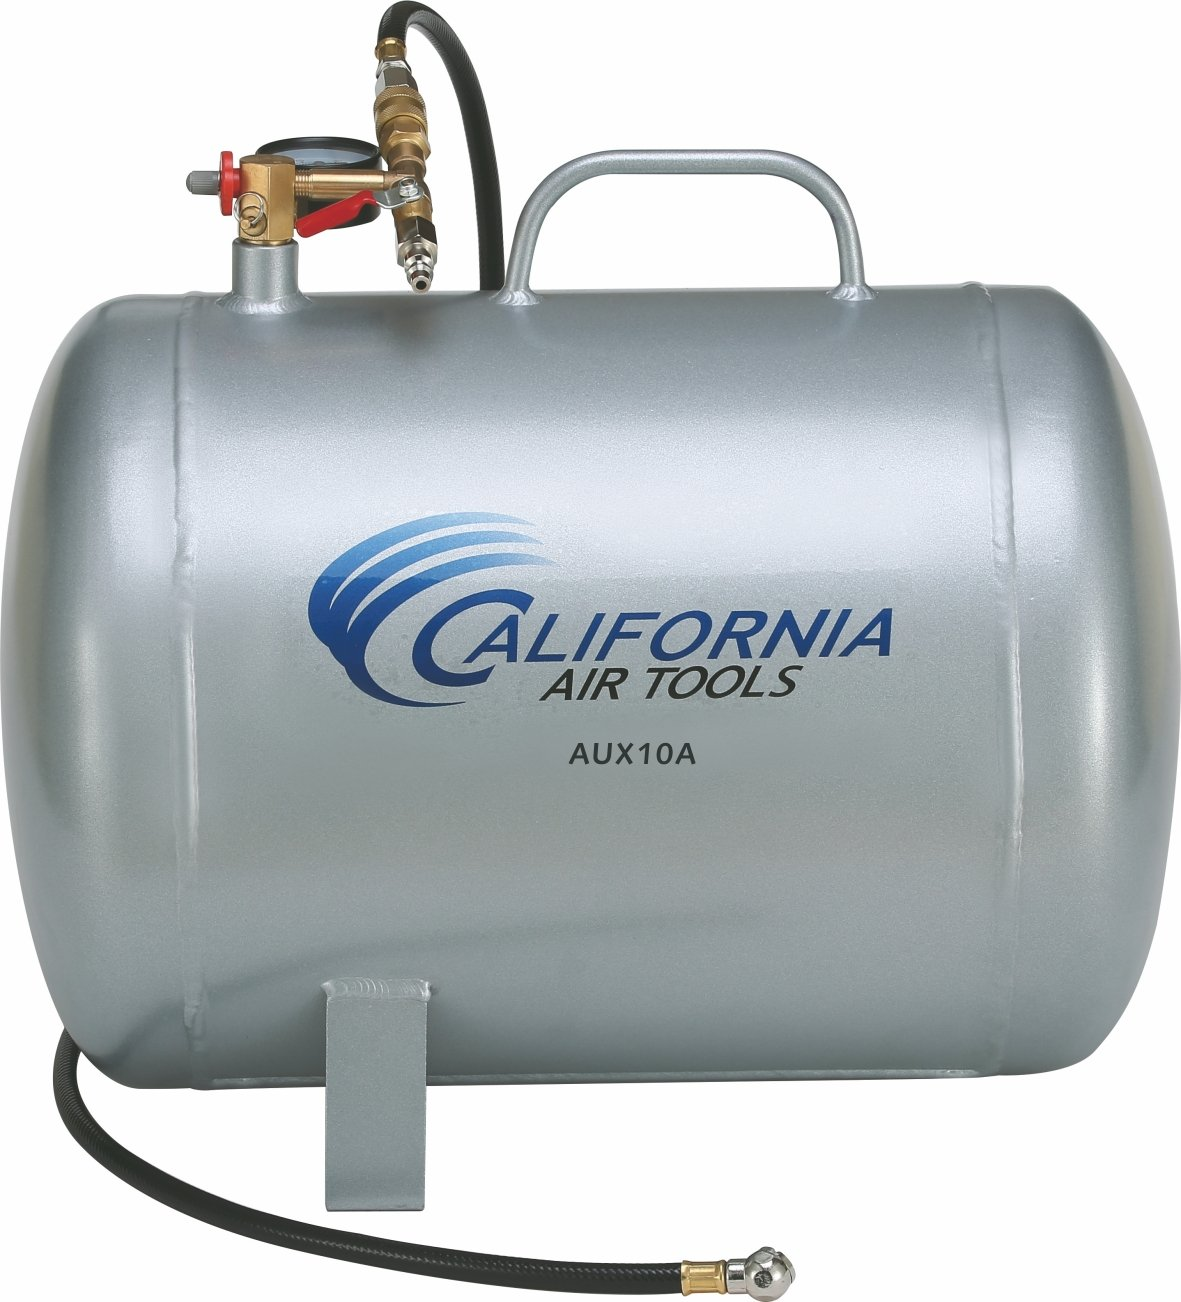 California Air Tools CAT-AUX10A 10 gallon Lightweight Portable Aluminum Air Tank, Silver